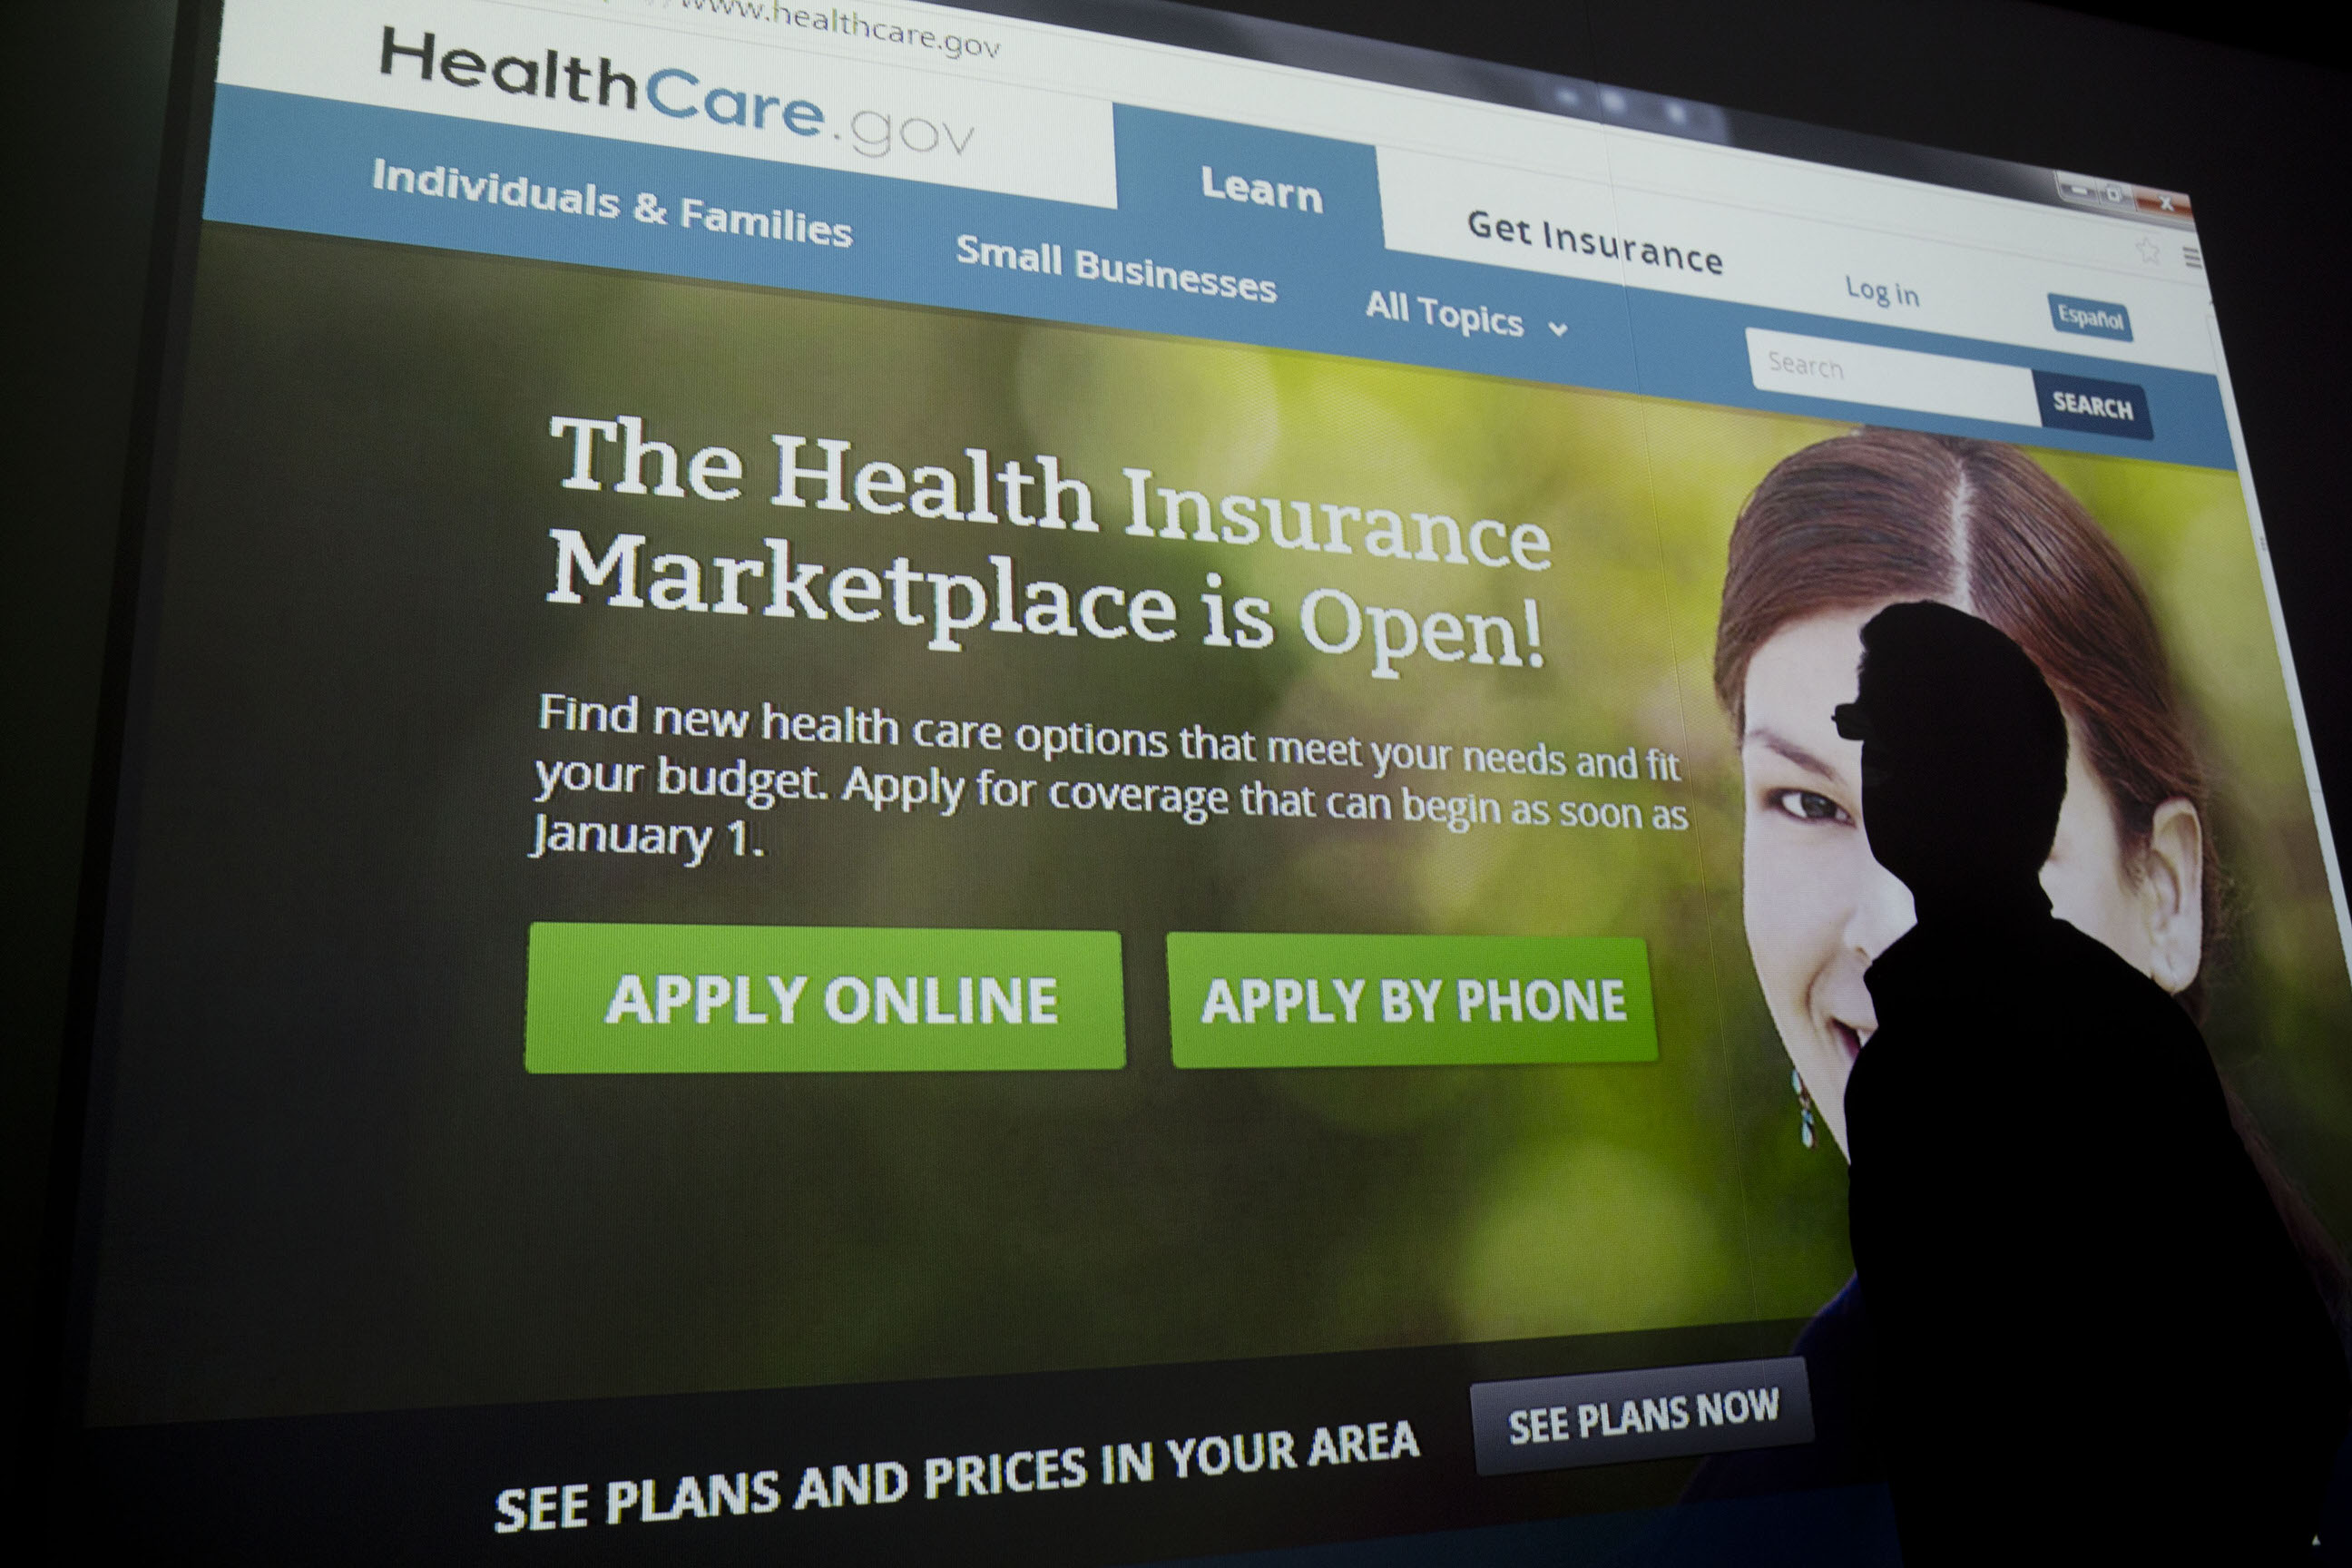 A man's shadow is silhouetted against the Healthcare.gov website in this illustration taken in Washington, D.C., U.S., on Thursday, Oct. 24, 2013.  Photographer: Andrew Harrer/Bloomberg